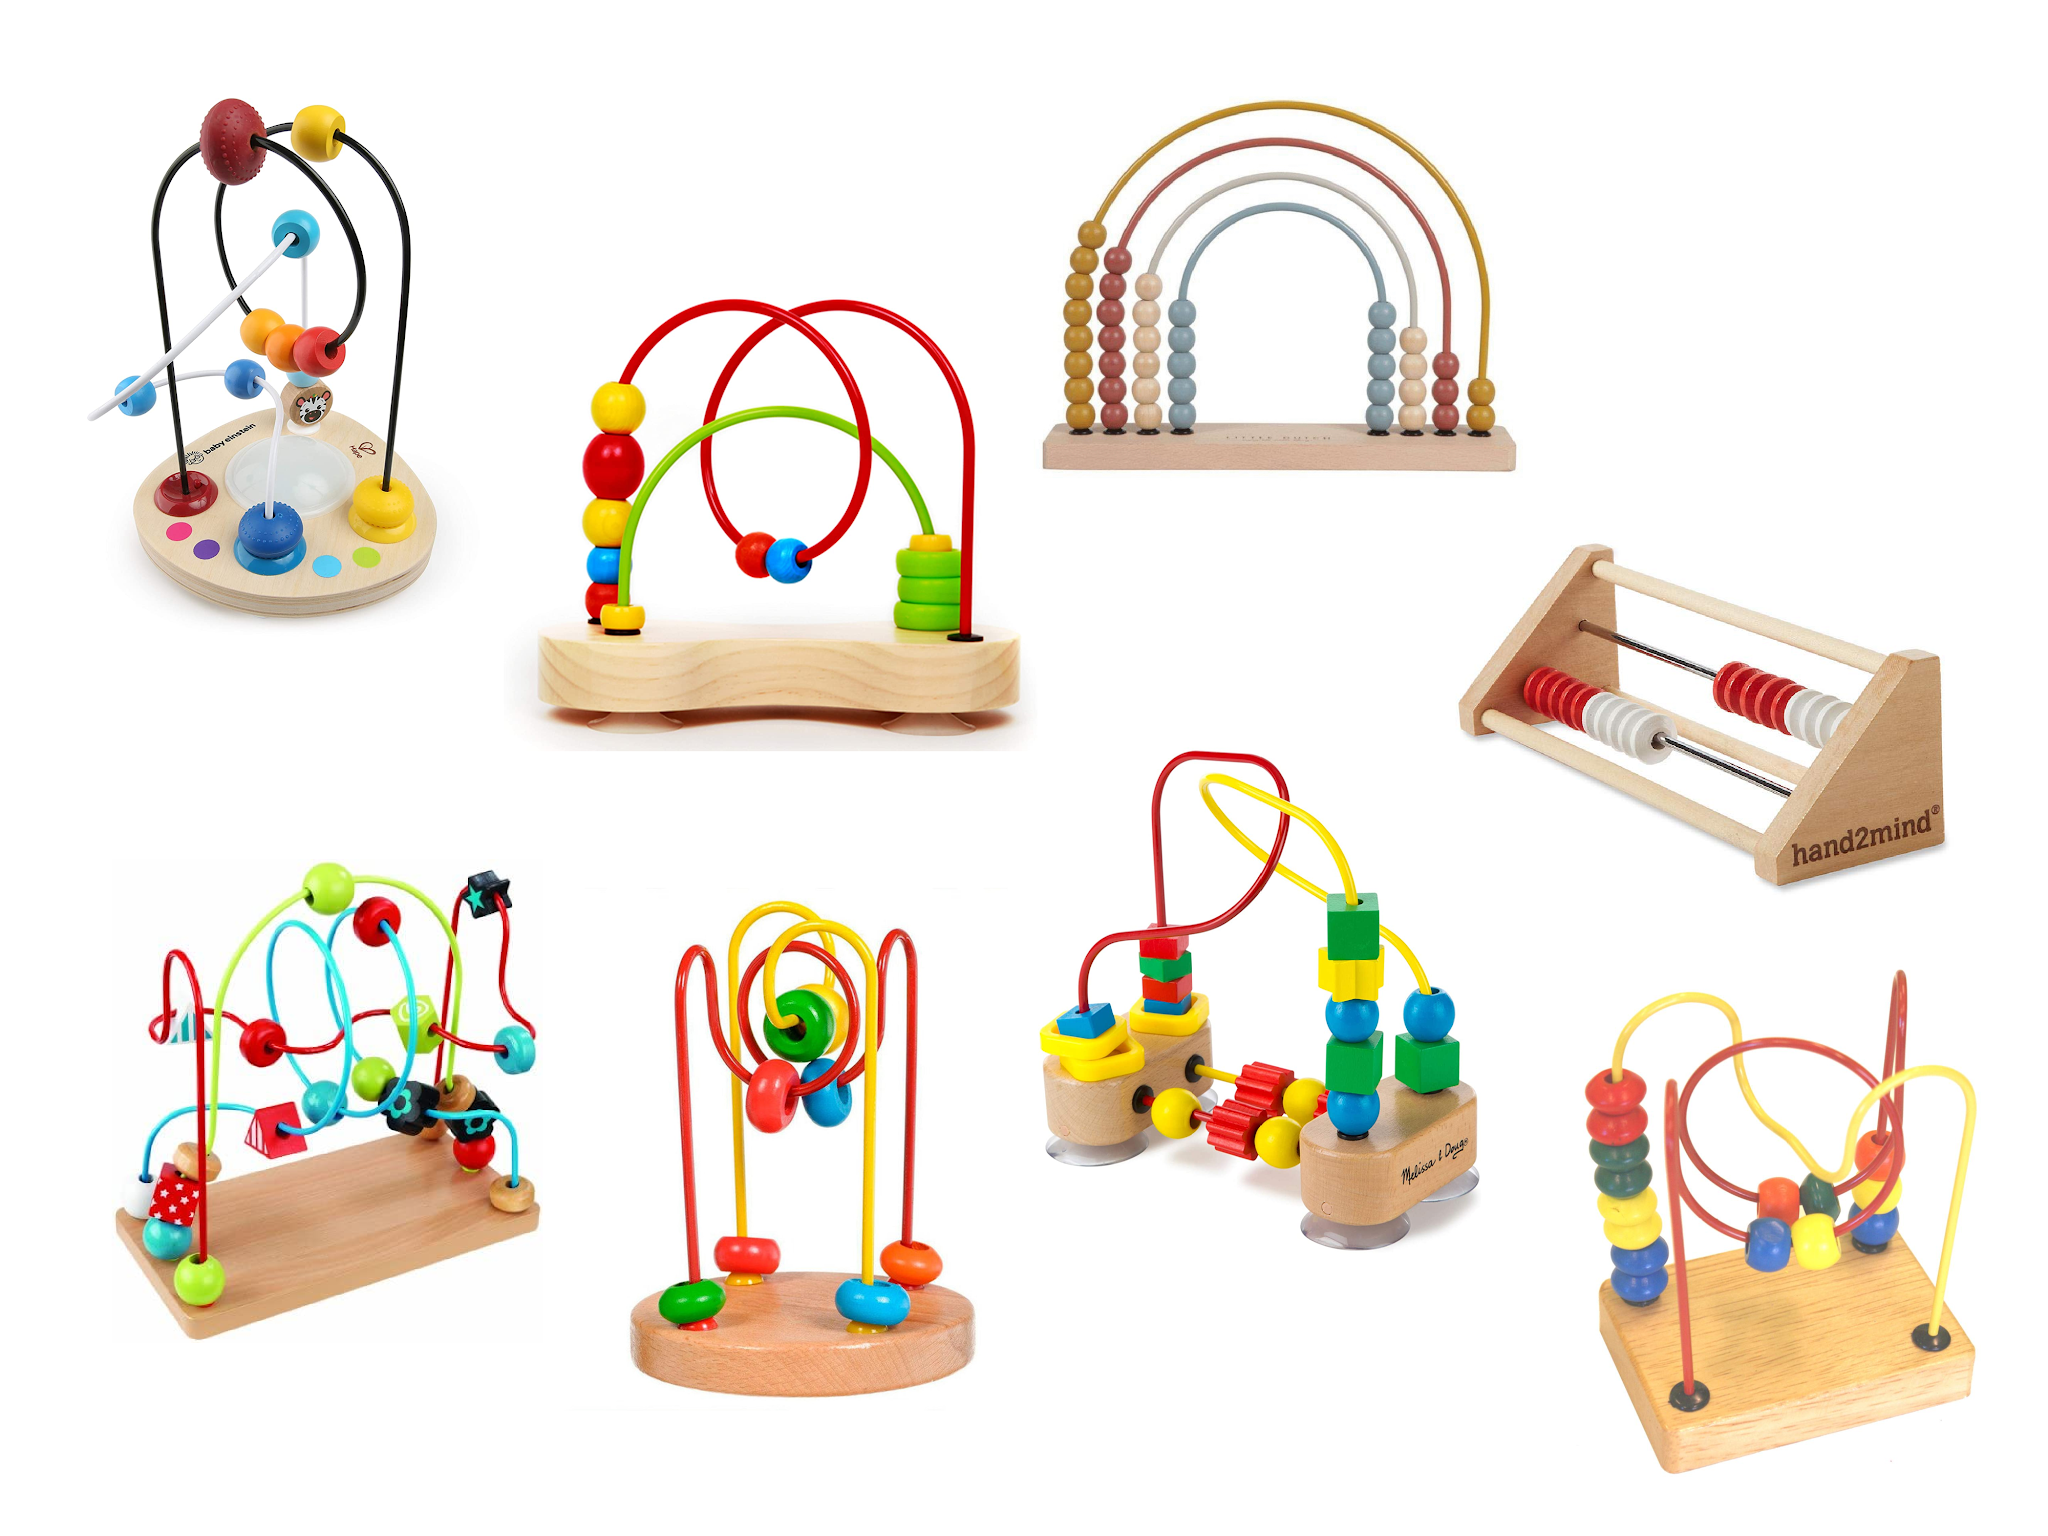 Bead movers are a wonderful Montessori baby activity. Here are some options and ideas to look for when considering a bead mover for your baby.